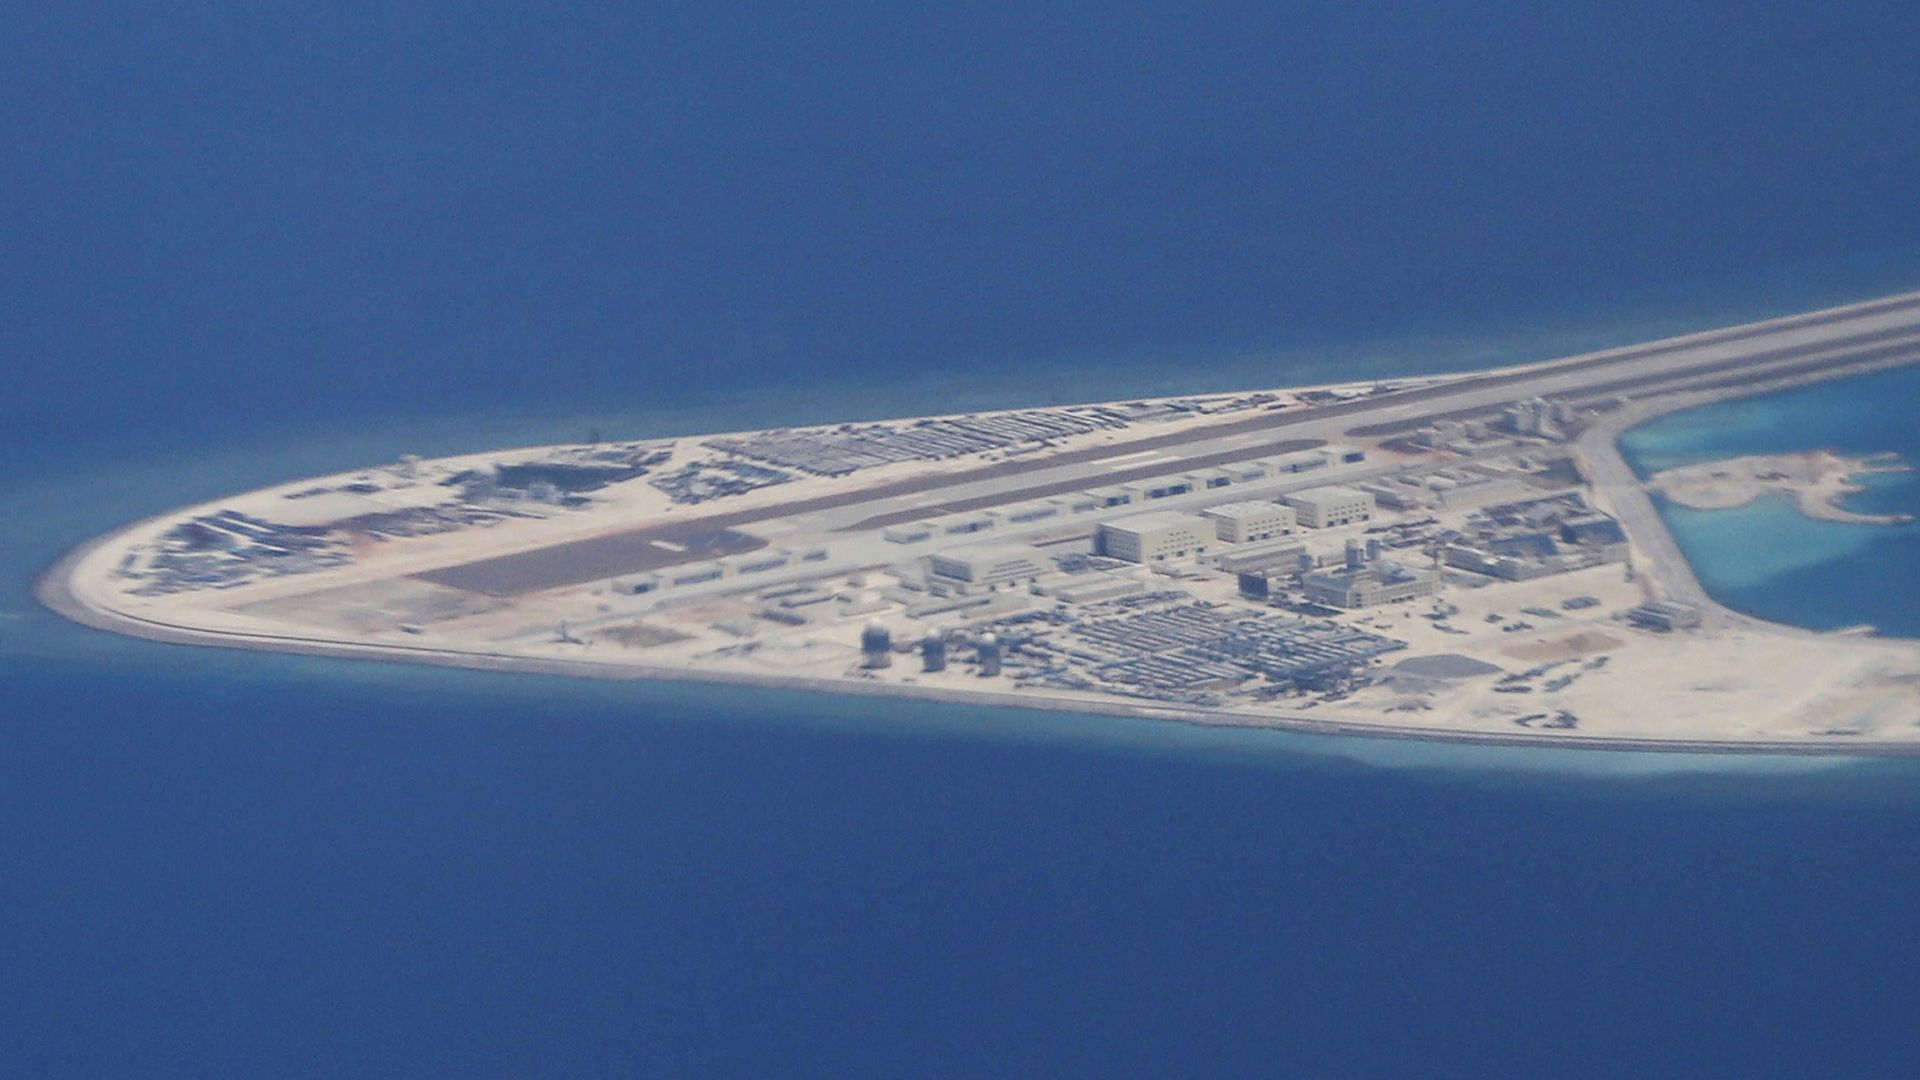 China's man-made Subi Reef